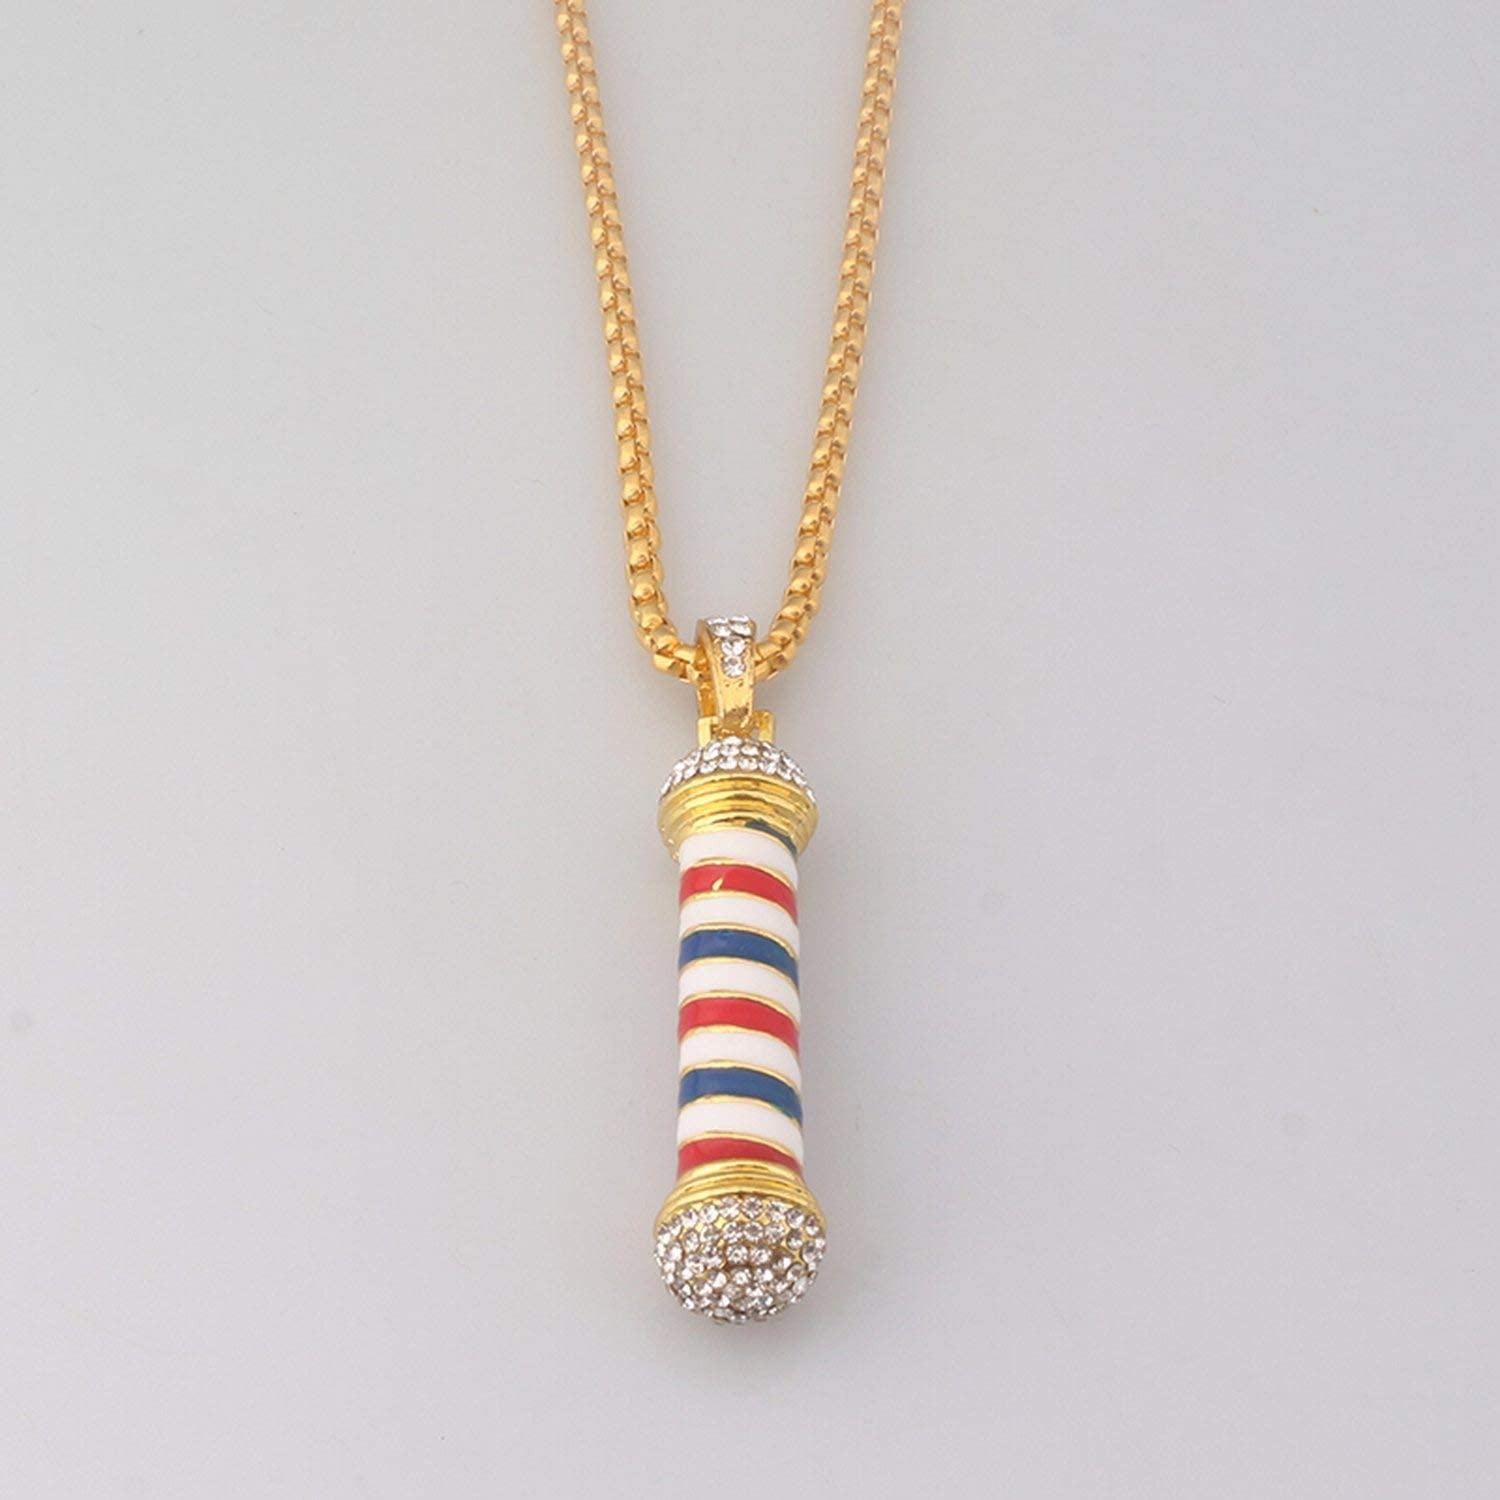 Monica/'s house Barber Shop Pole 3D Barber Pole Chain Pendant Necklace Hip Hop Barber Hairdresser Gothic Necklace Jewelry